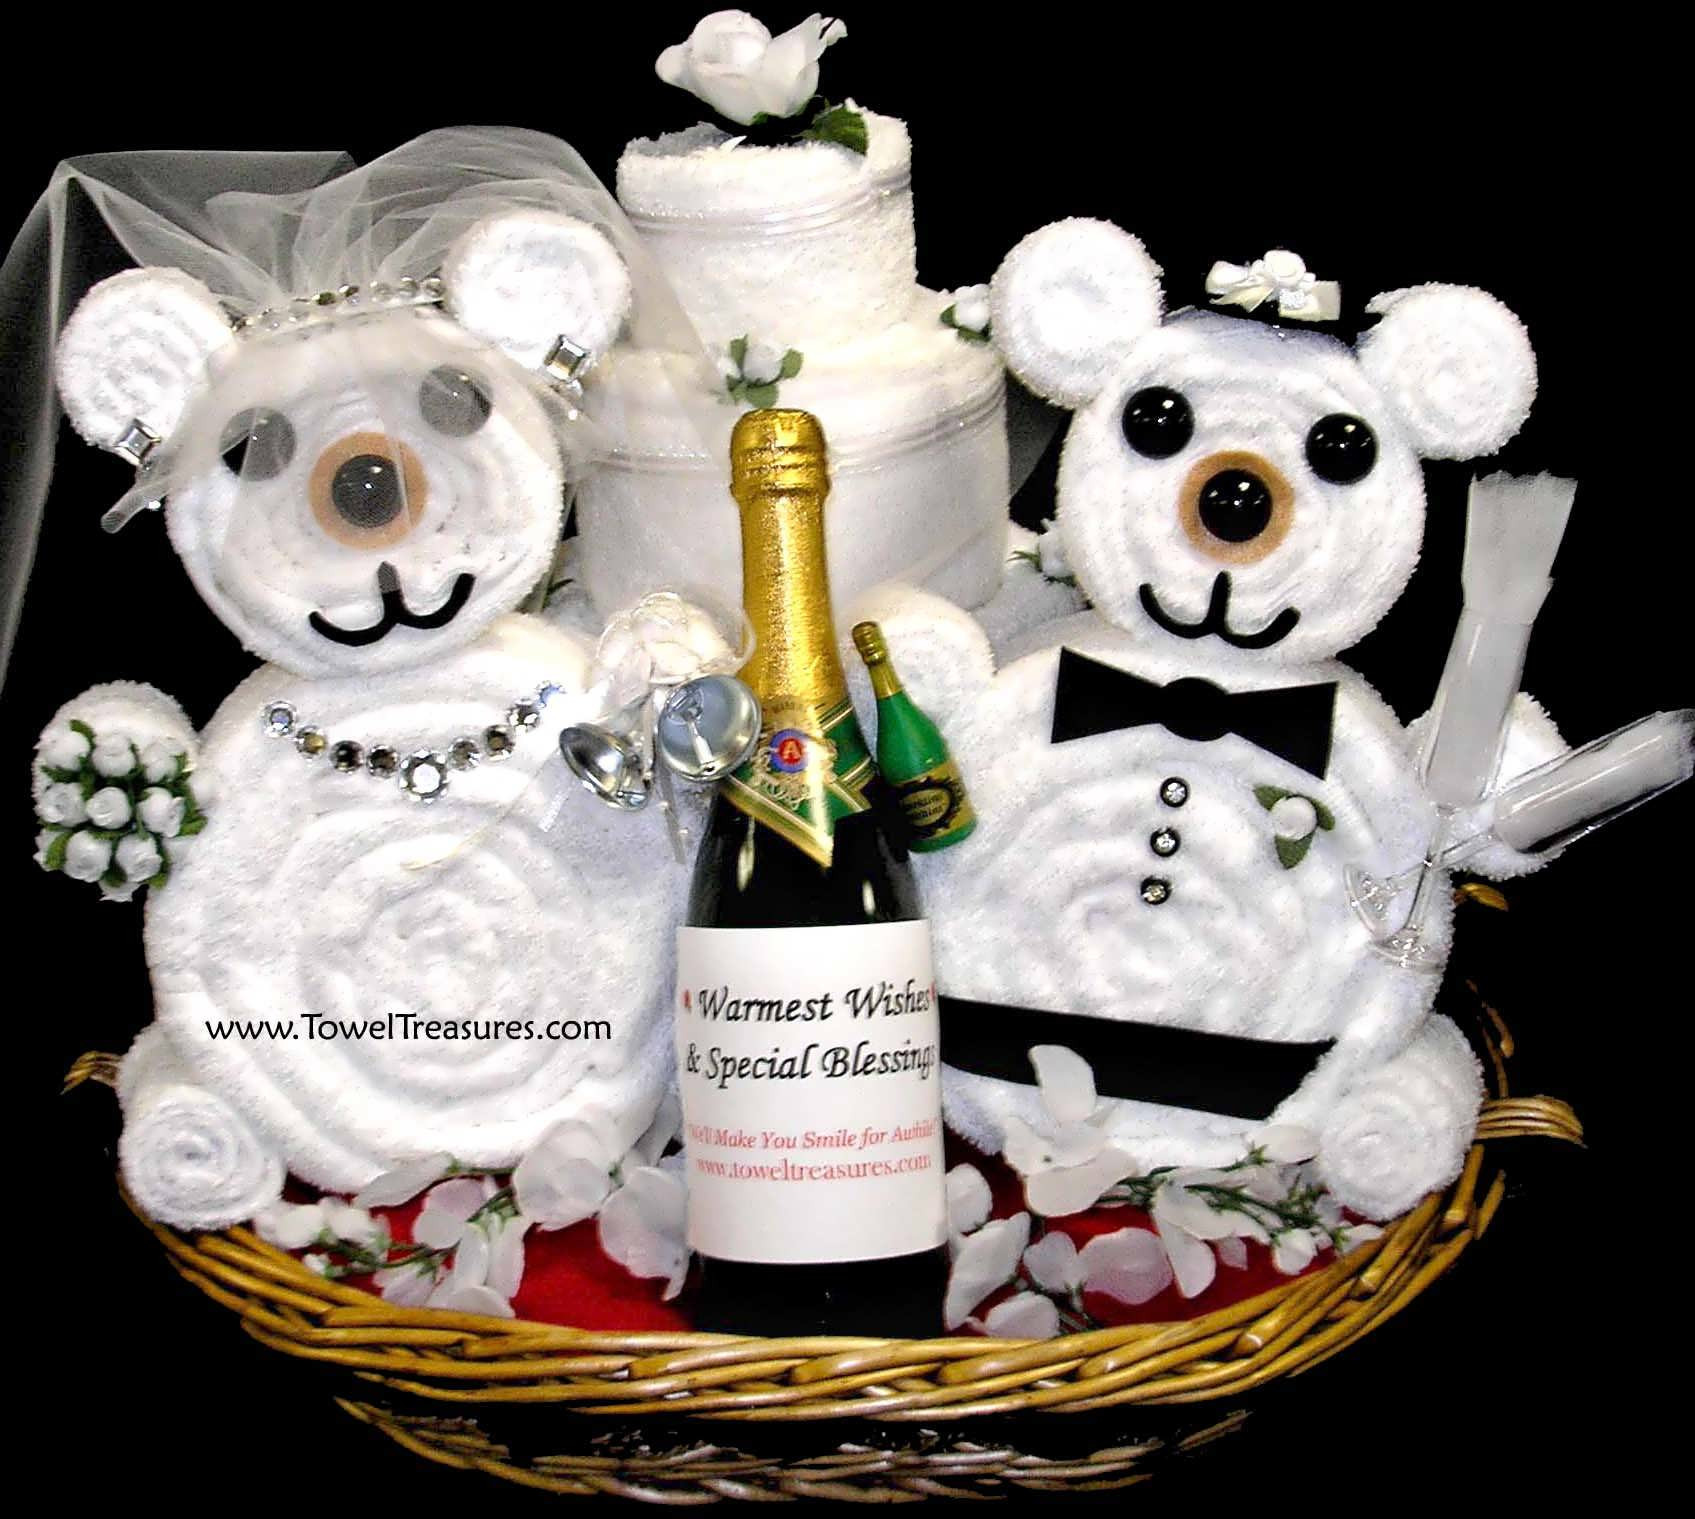 Best ideas about Wedding Gift Basket Ideas . Save or Pin Bridal Shower Gift Basket With Poem Now.